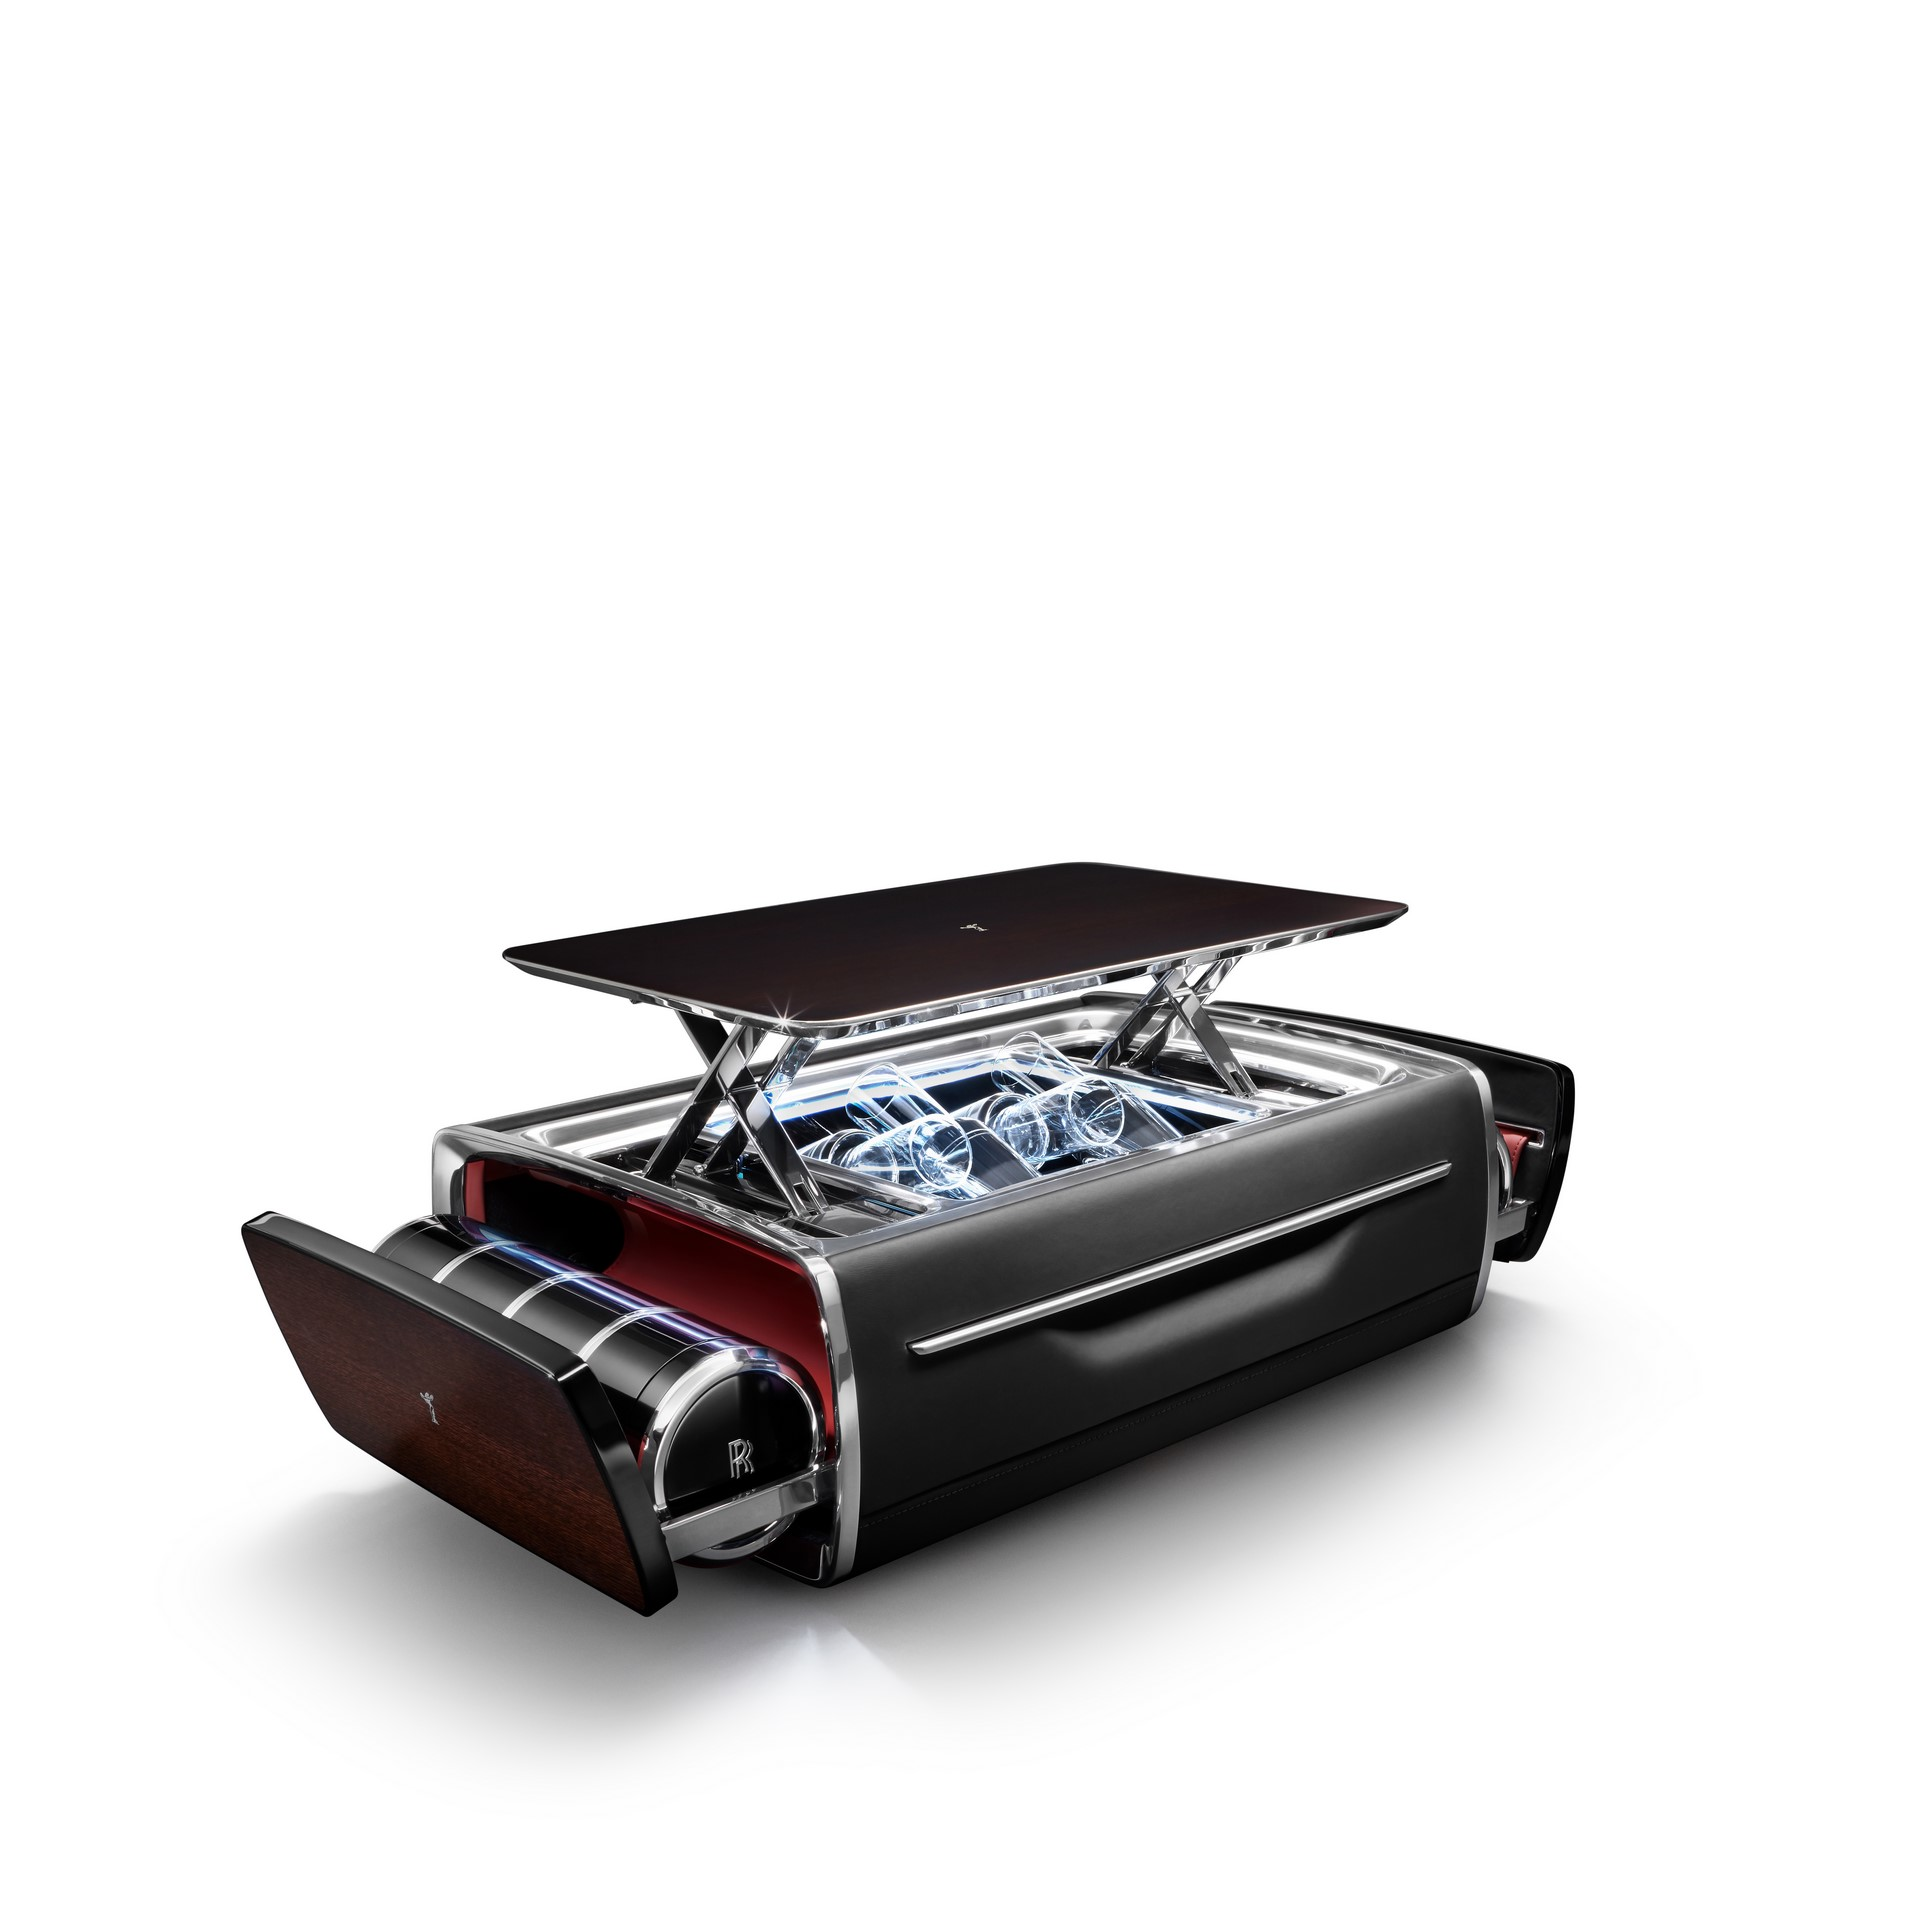 Rolls-Royce-Champagne-Chest-3